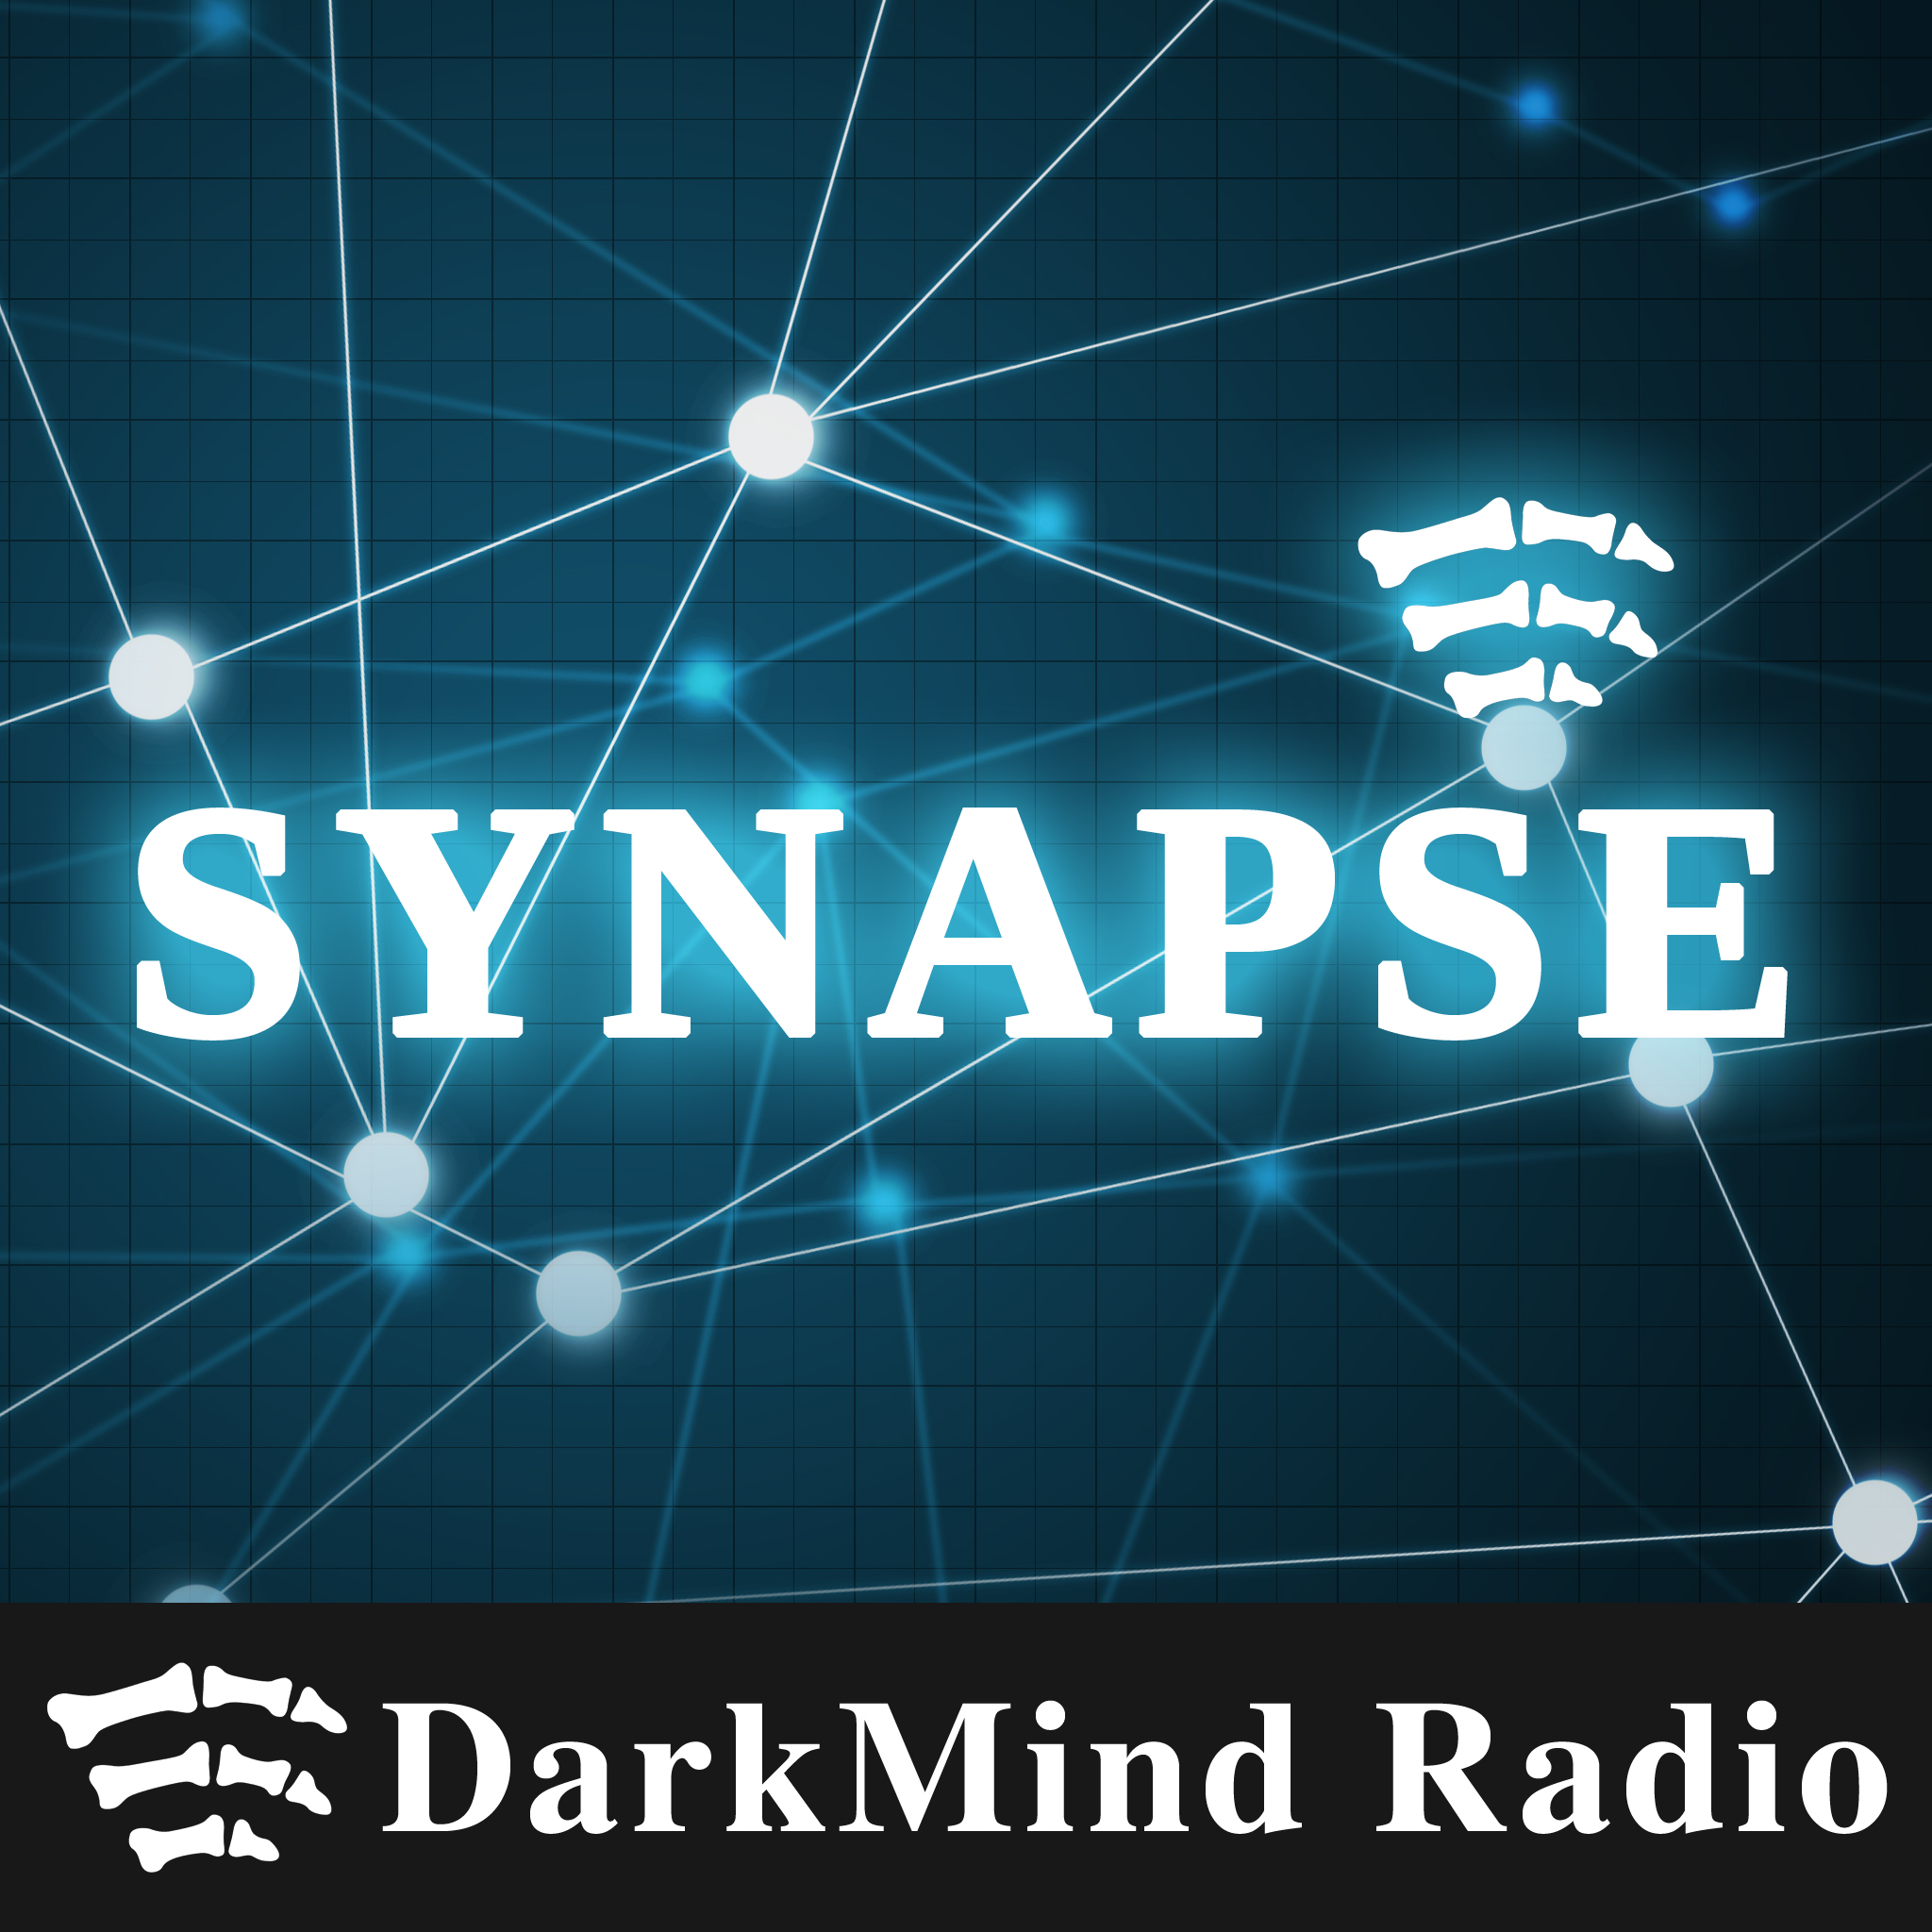 DarkMind Radio Synapse